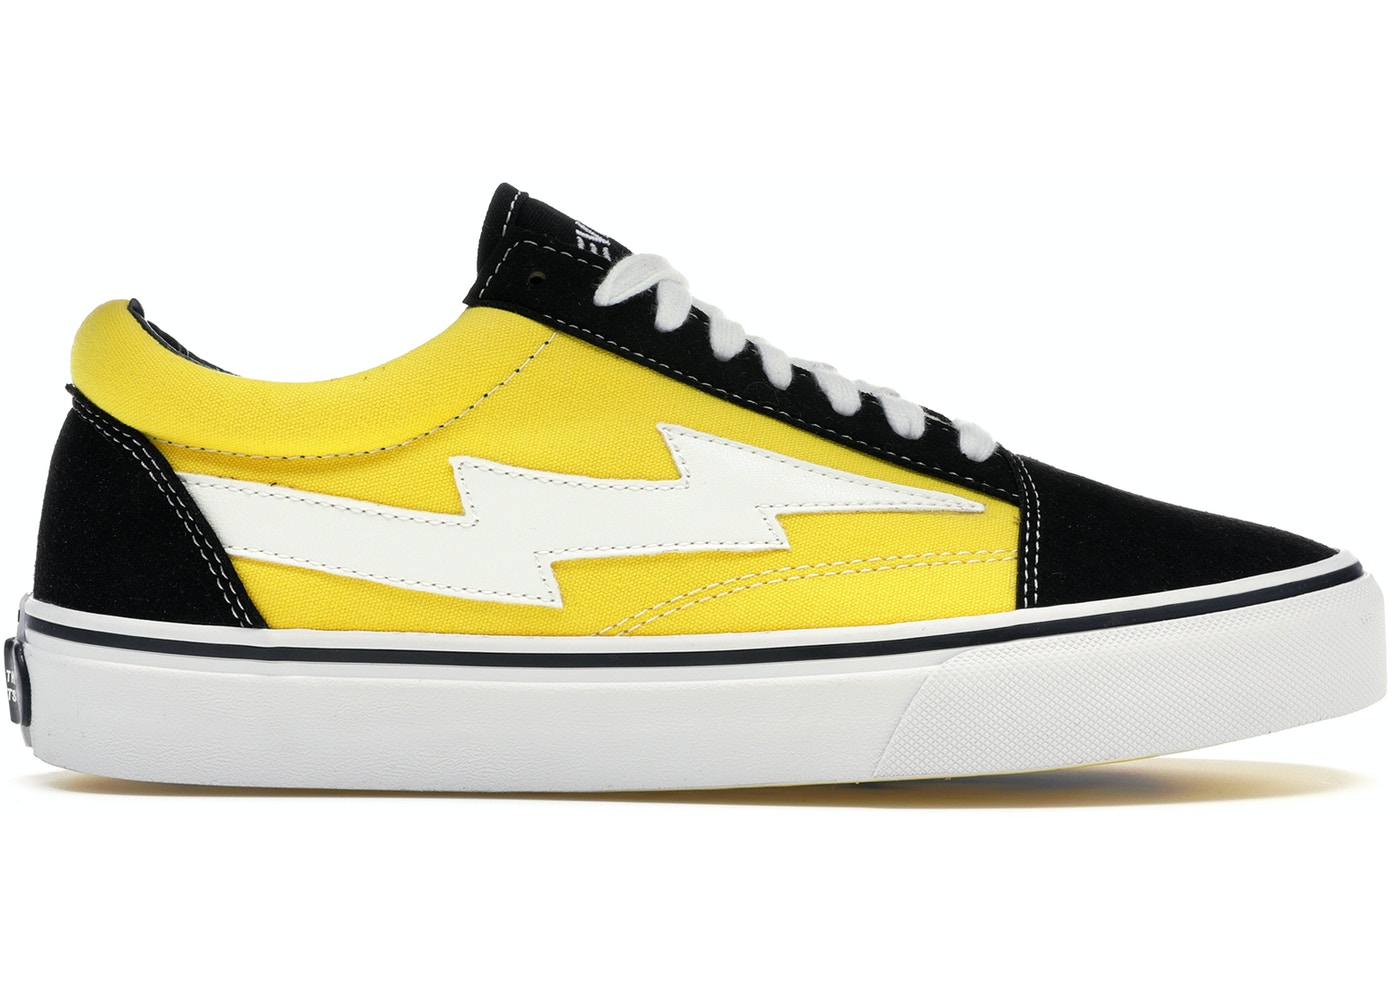 Revenge X Storm Low Top Black Yellow - RS588977-004 22e88ad9ef6f